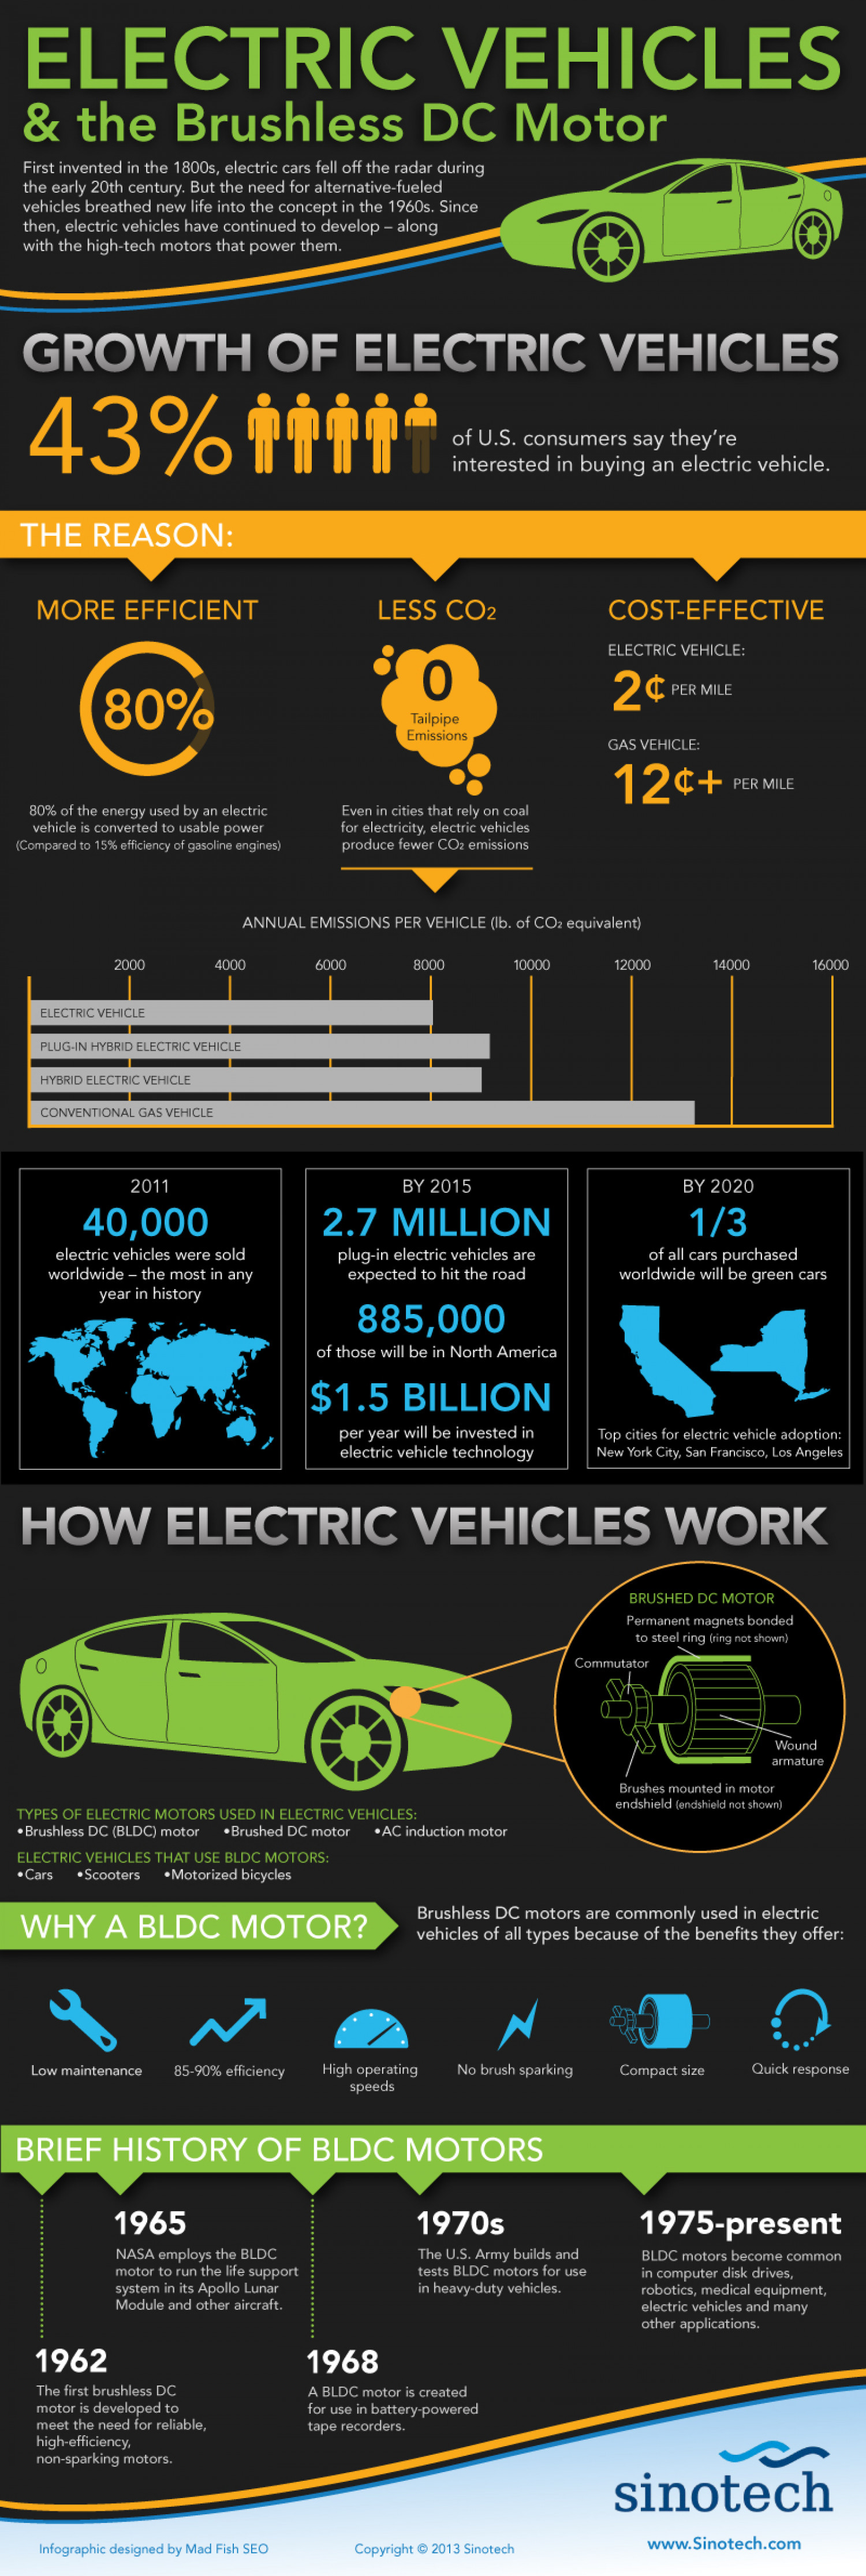 Electric Vehicles & the Brushless DC Motor  Infographic